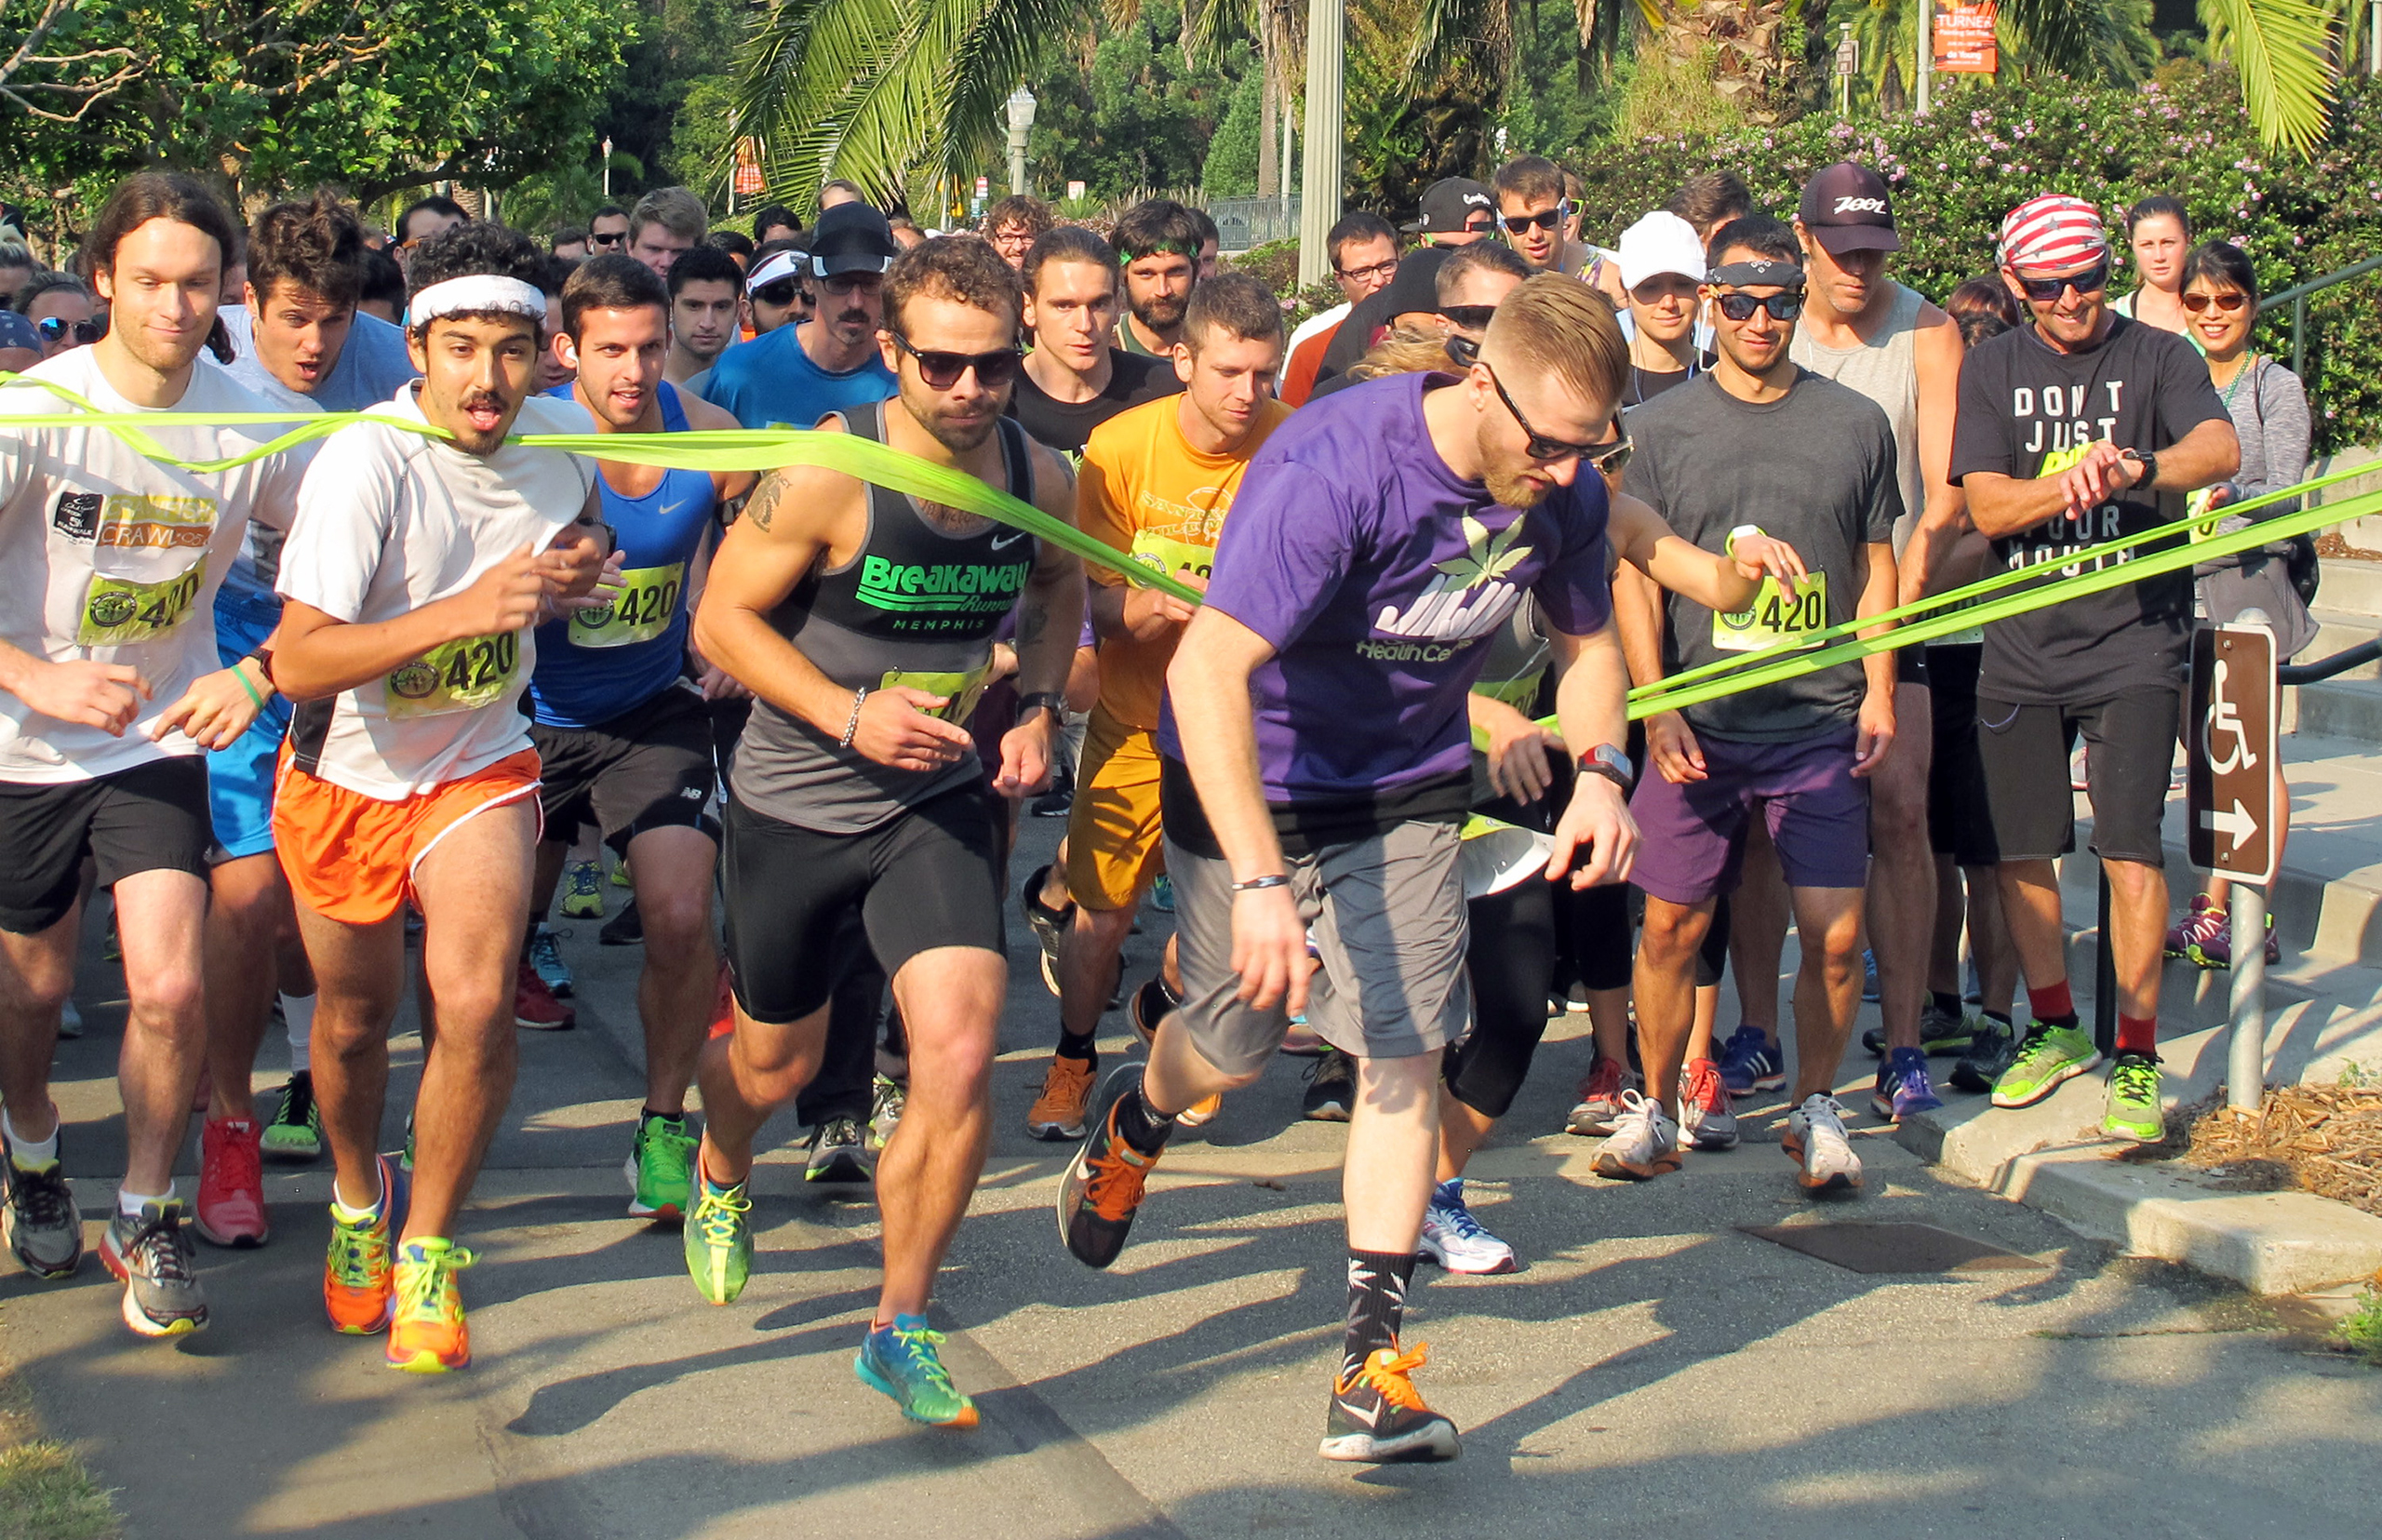 Runners take off in a 4.2-mile run, part of the 420 Games, an effort to stop the stigmatization of cannabis use through athletic events, at Golden Gate Park in San Francisco, Aug. 15, 2015.